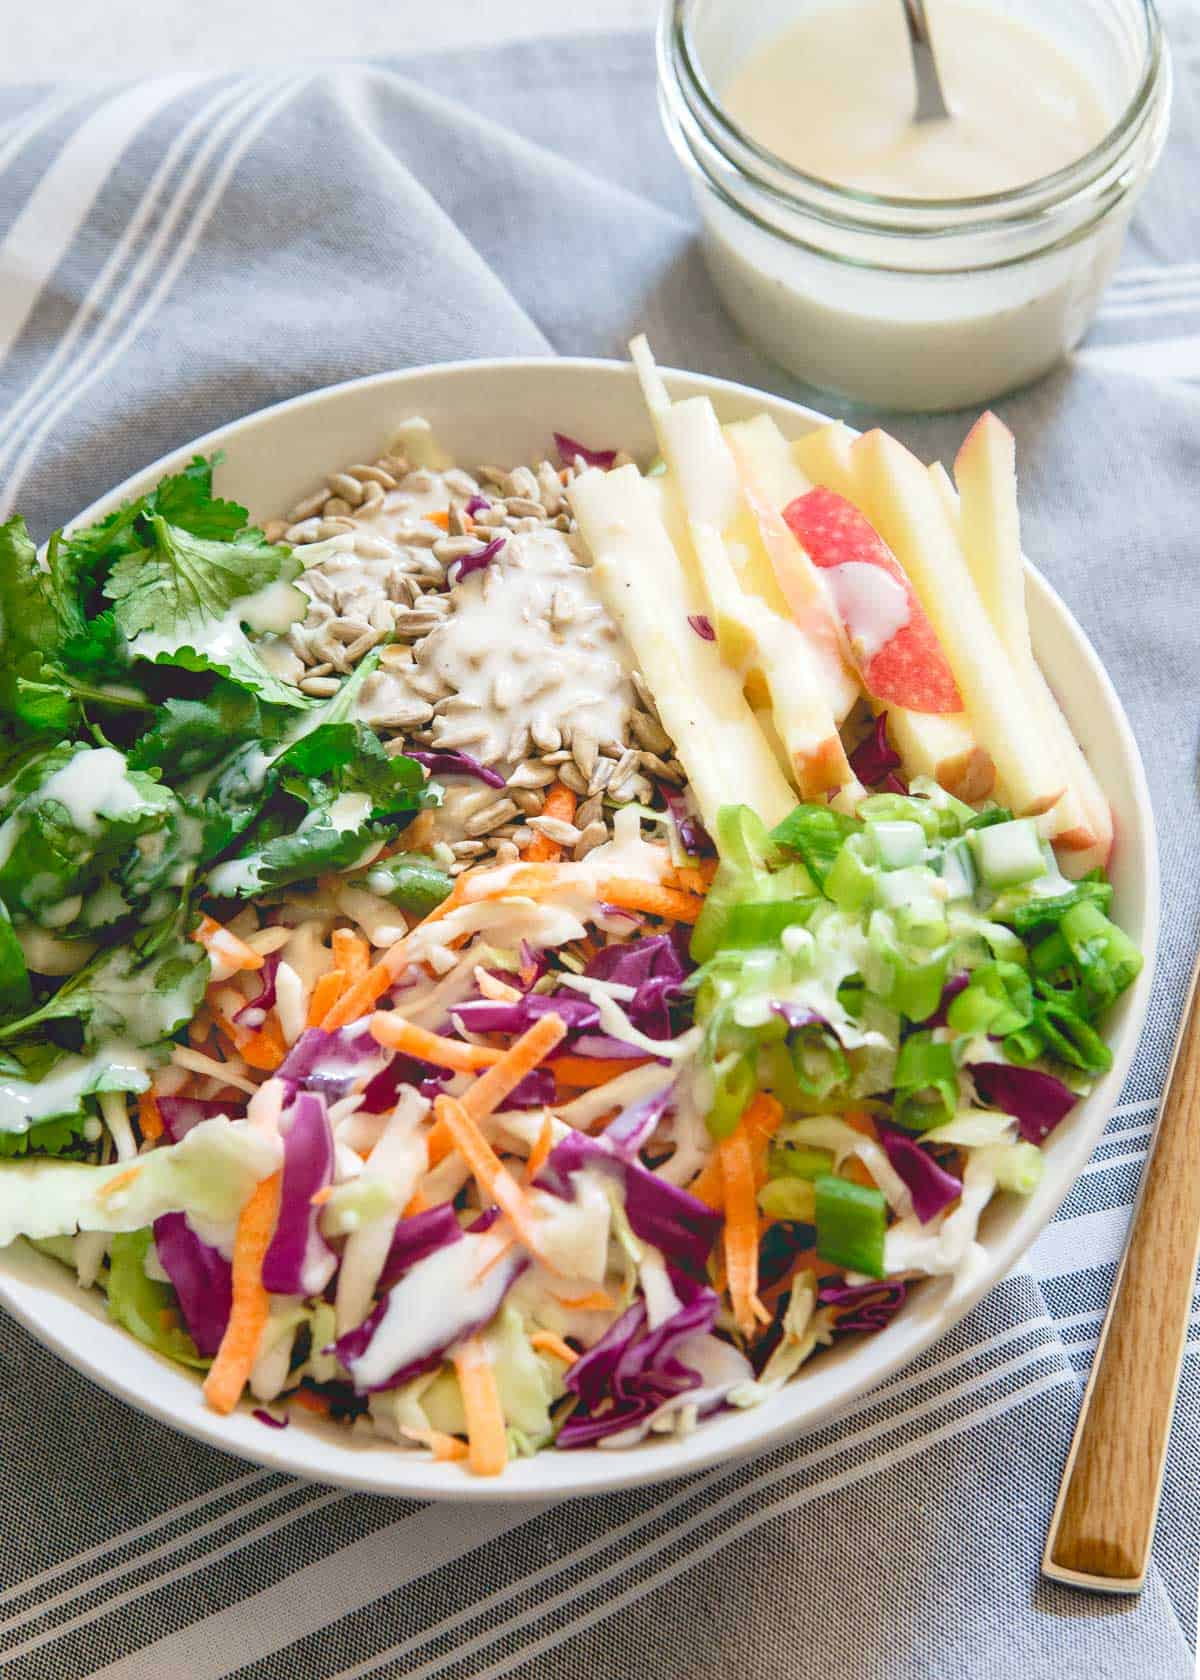 This honey mustard dressing uses kefir as the base for a creamy, homemade option with all the benefits of naturally occurring probiotics.